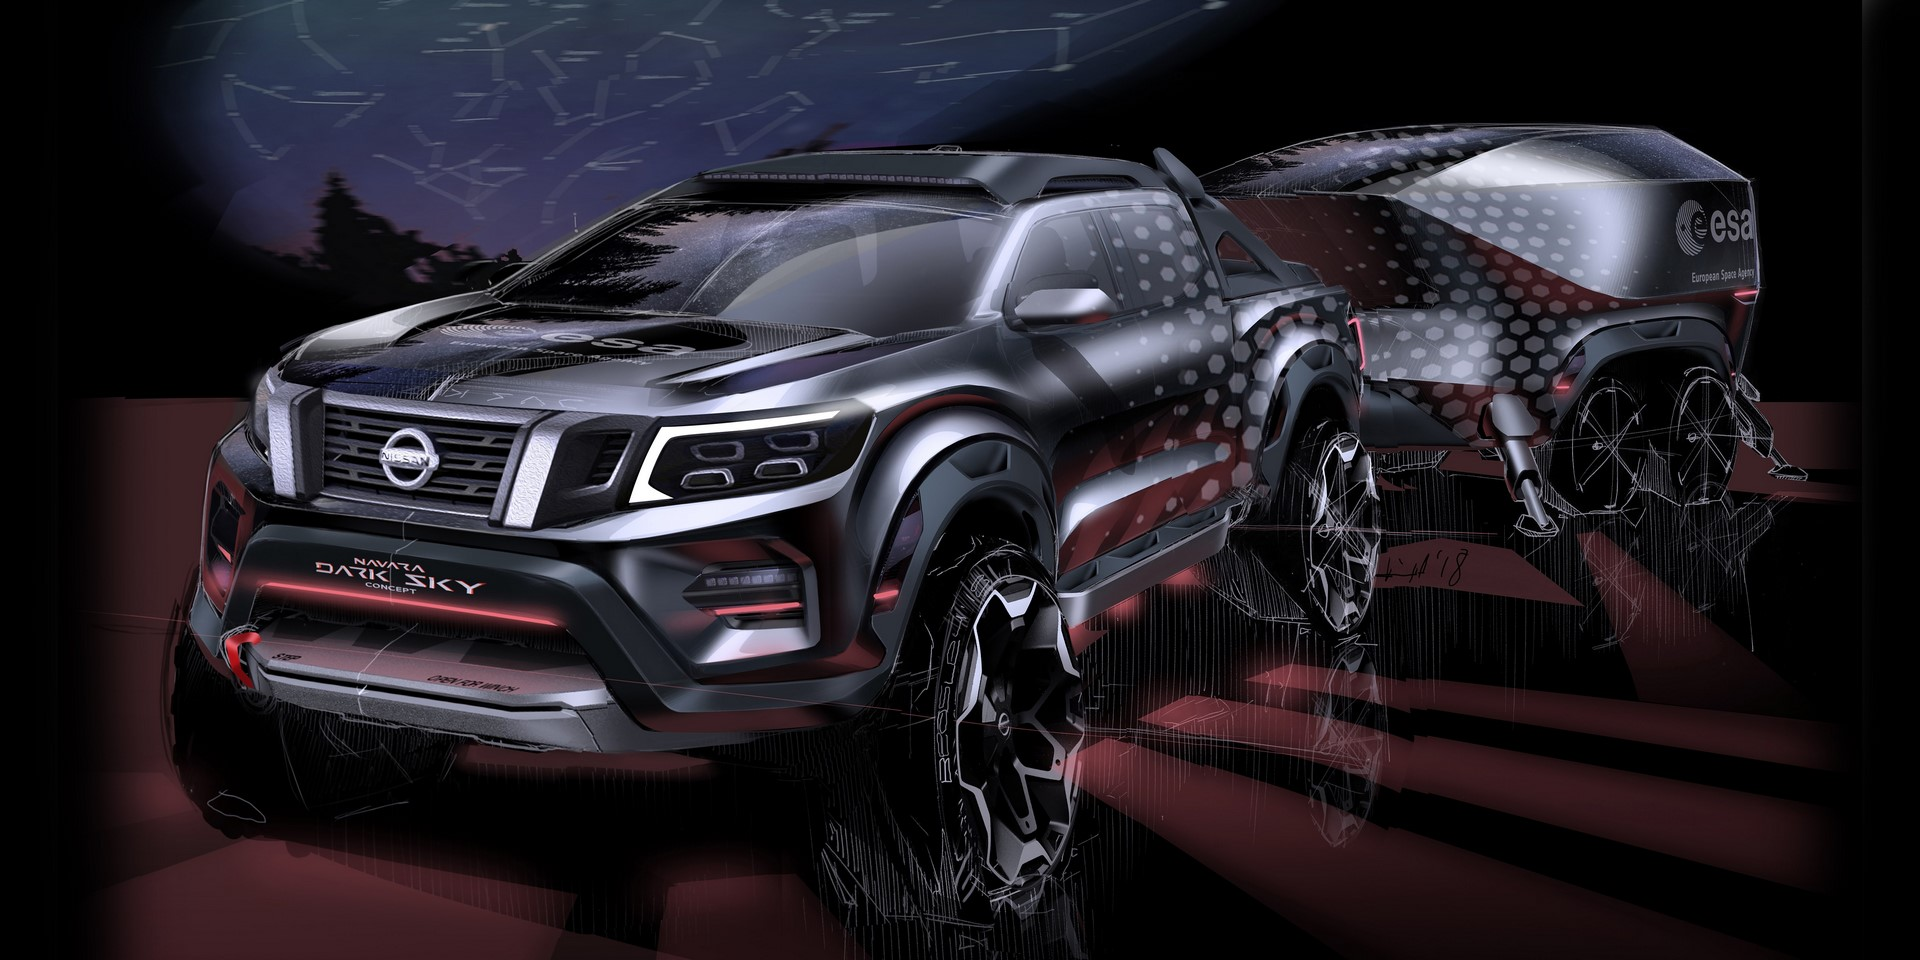 SKETCH: the Nissan Navara Dark Sky Concept